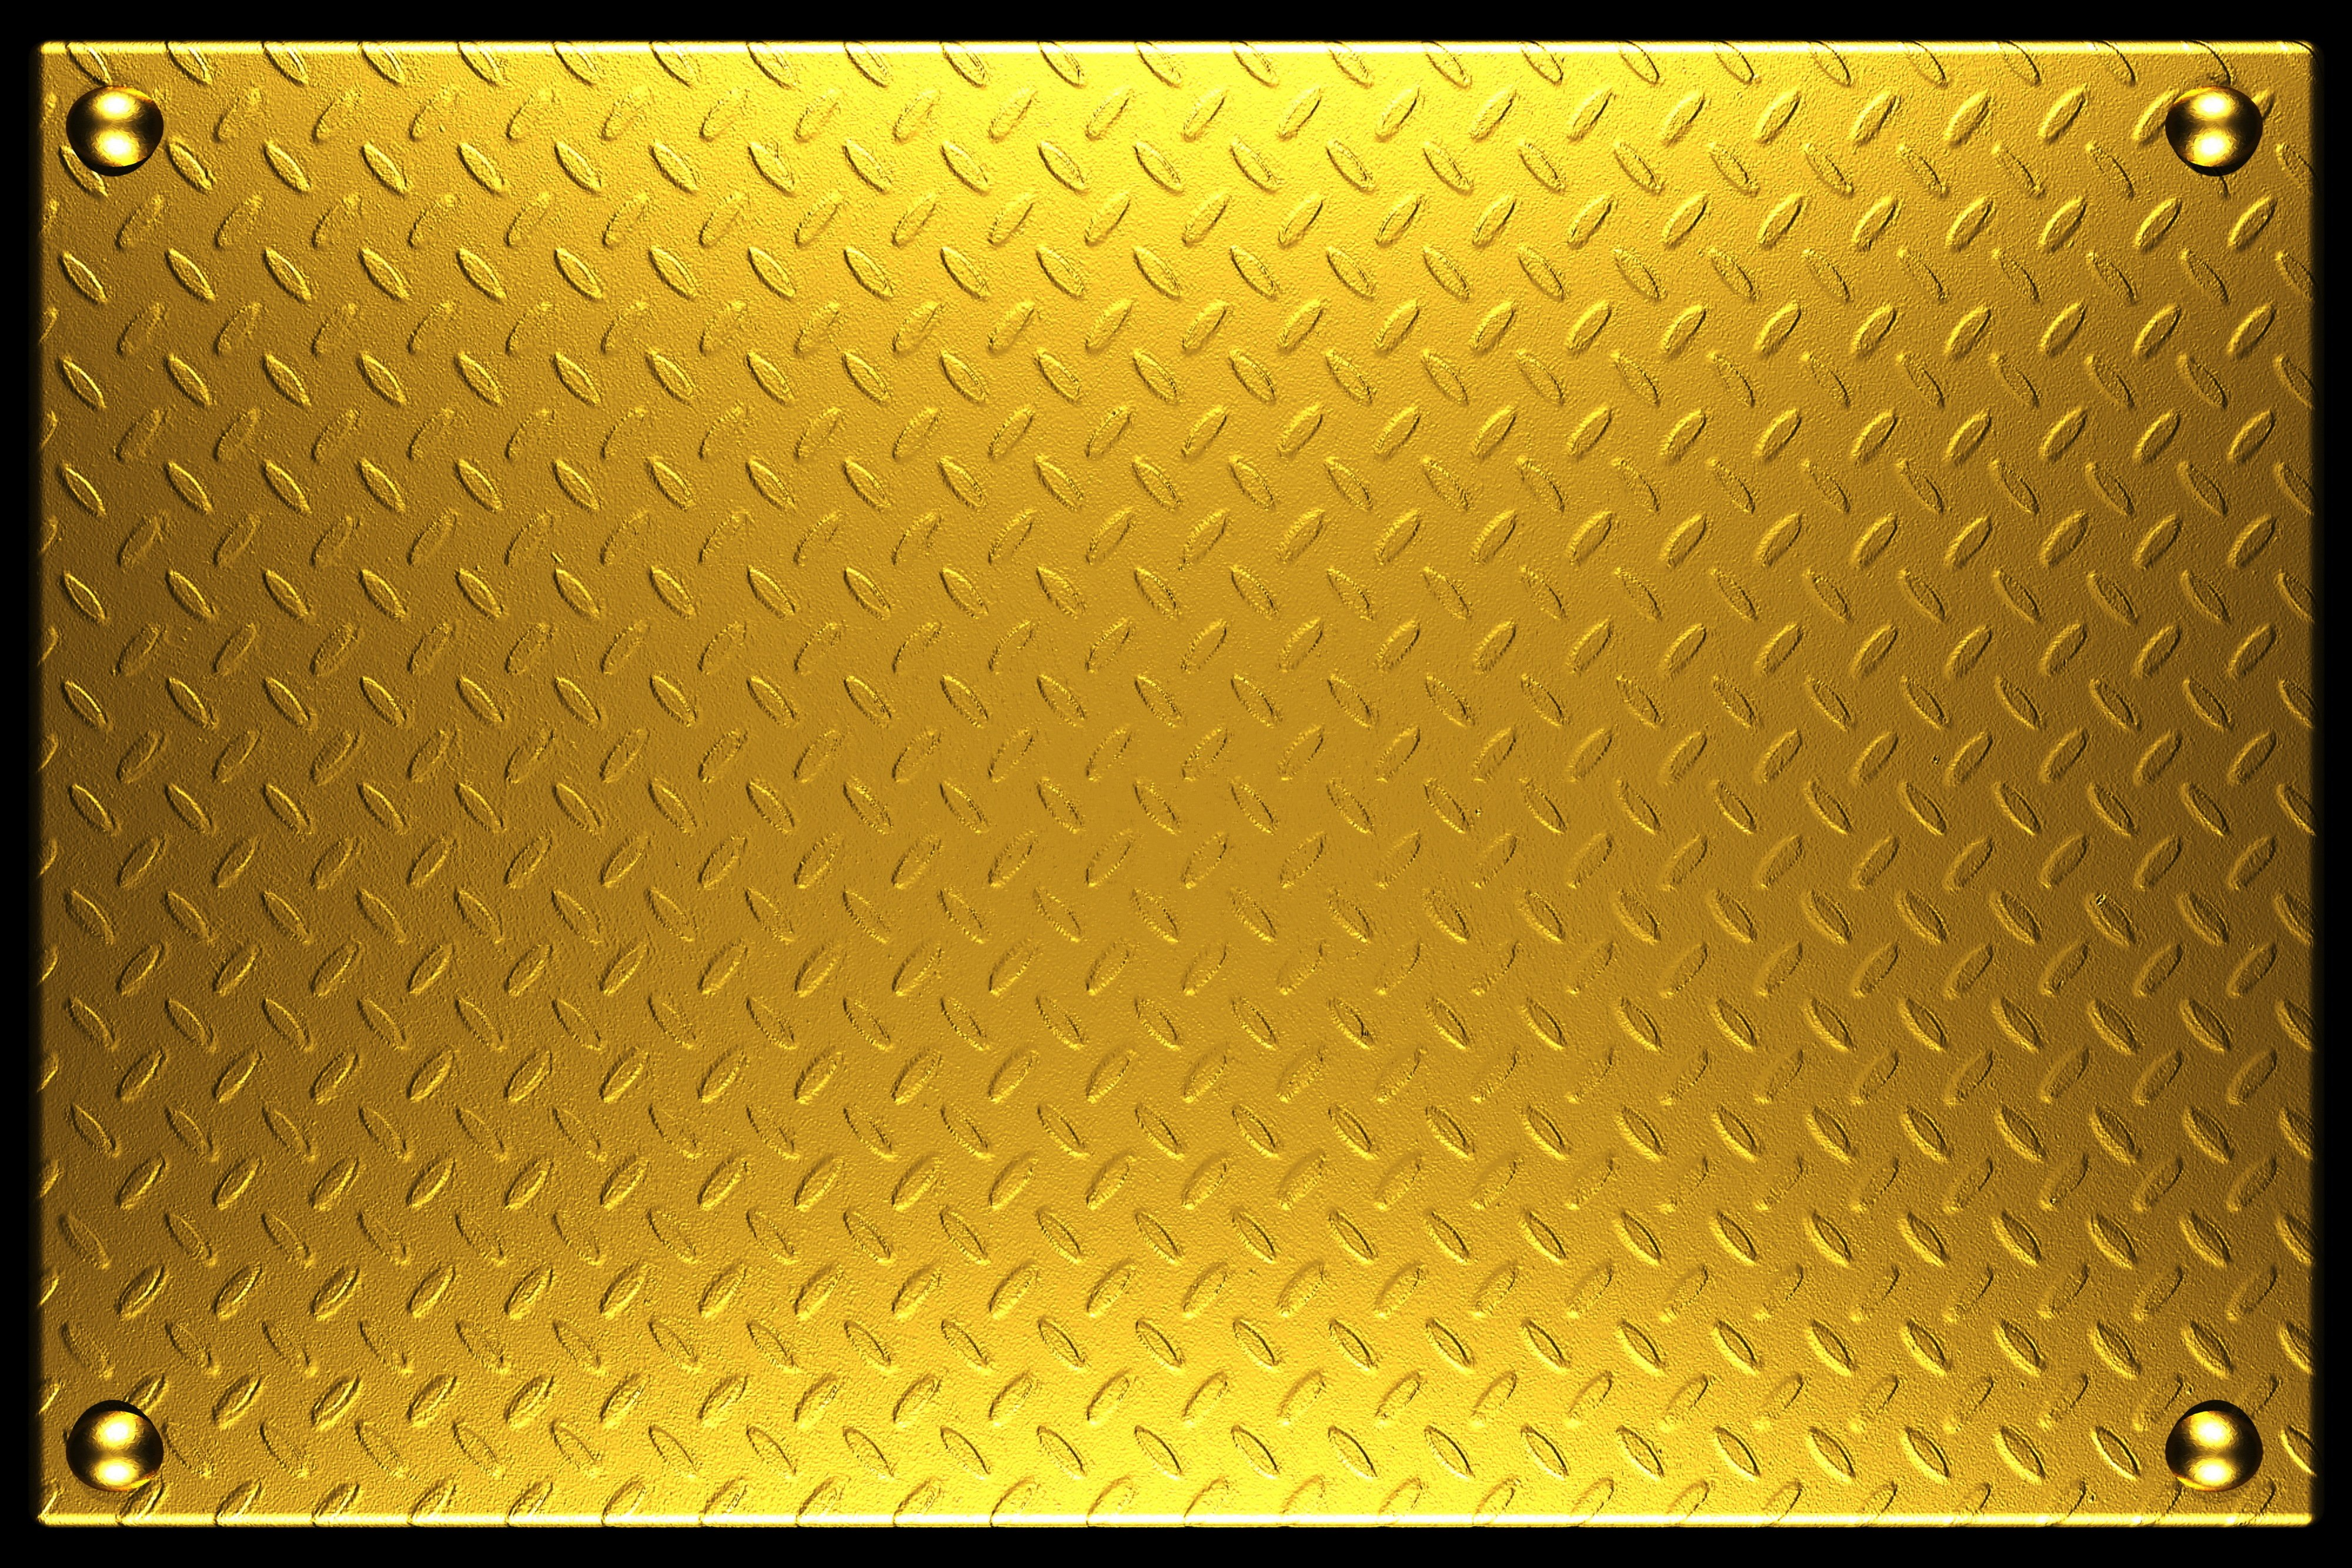 gold metal texture background - photo #24